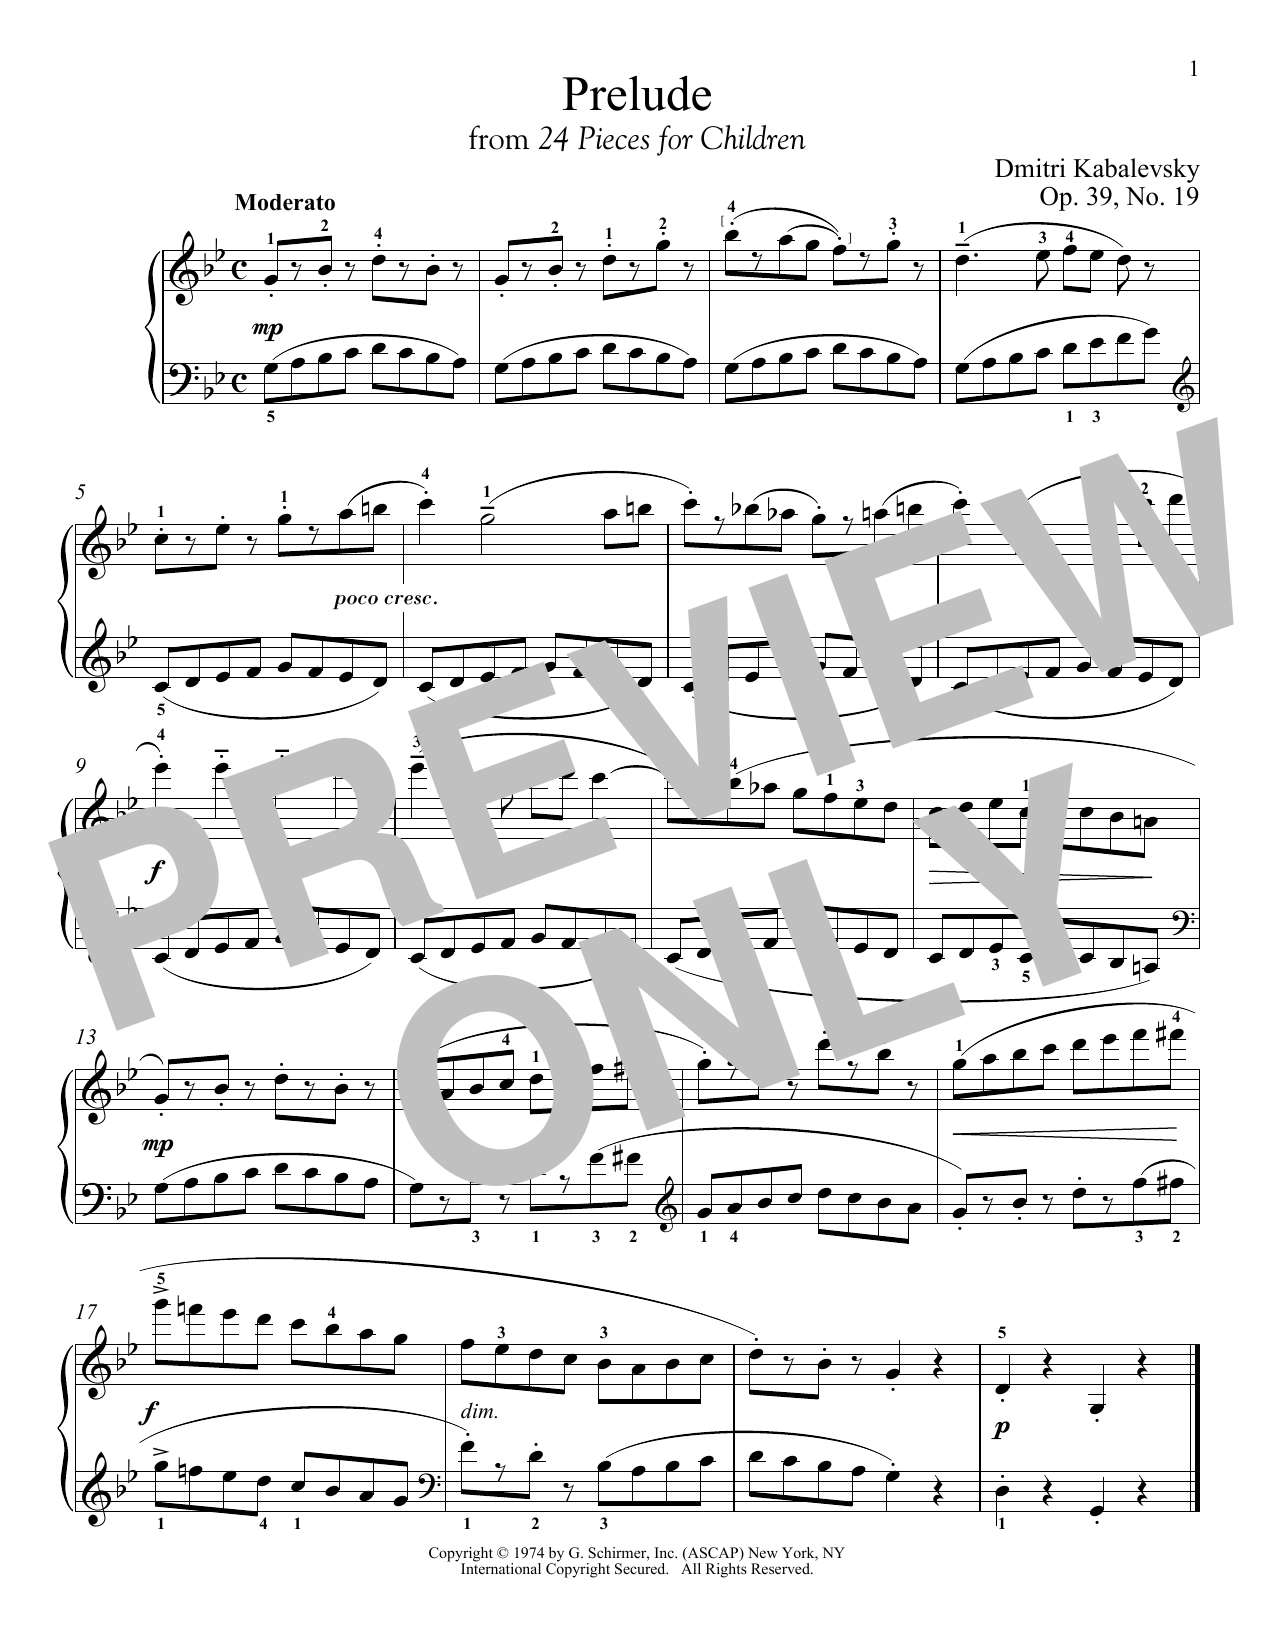 Download Dmitri Kabalevsky 'Prelude, Op. 39, No. 19' Digital Sheet Music Notes & Chords and start playing in minutes